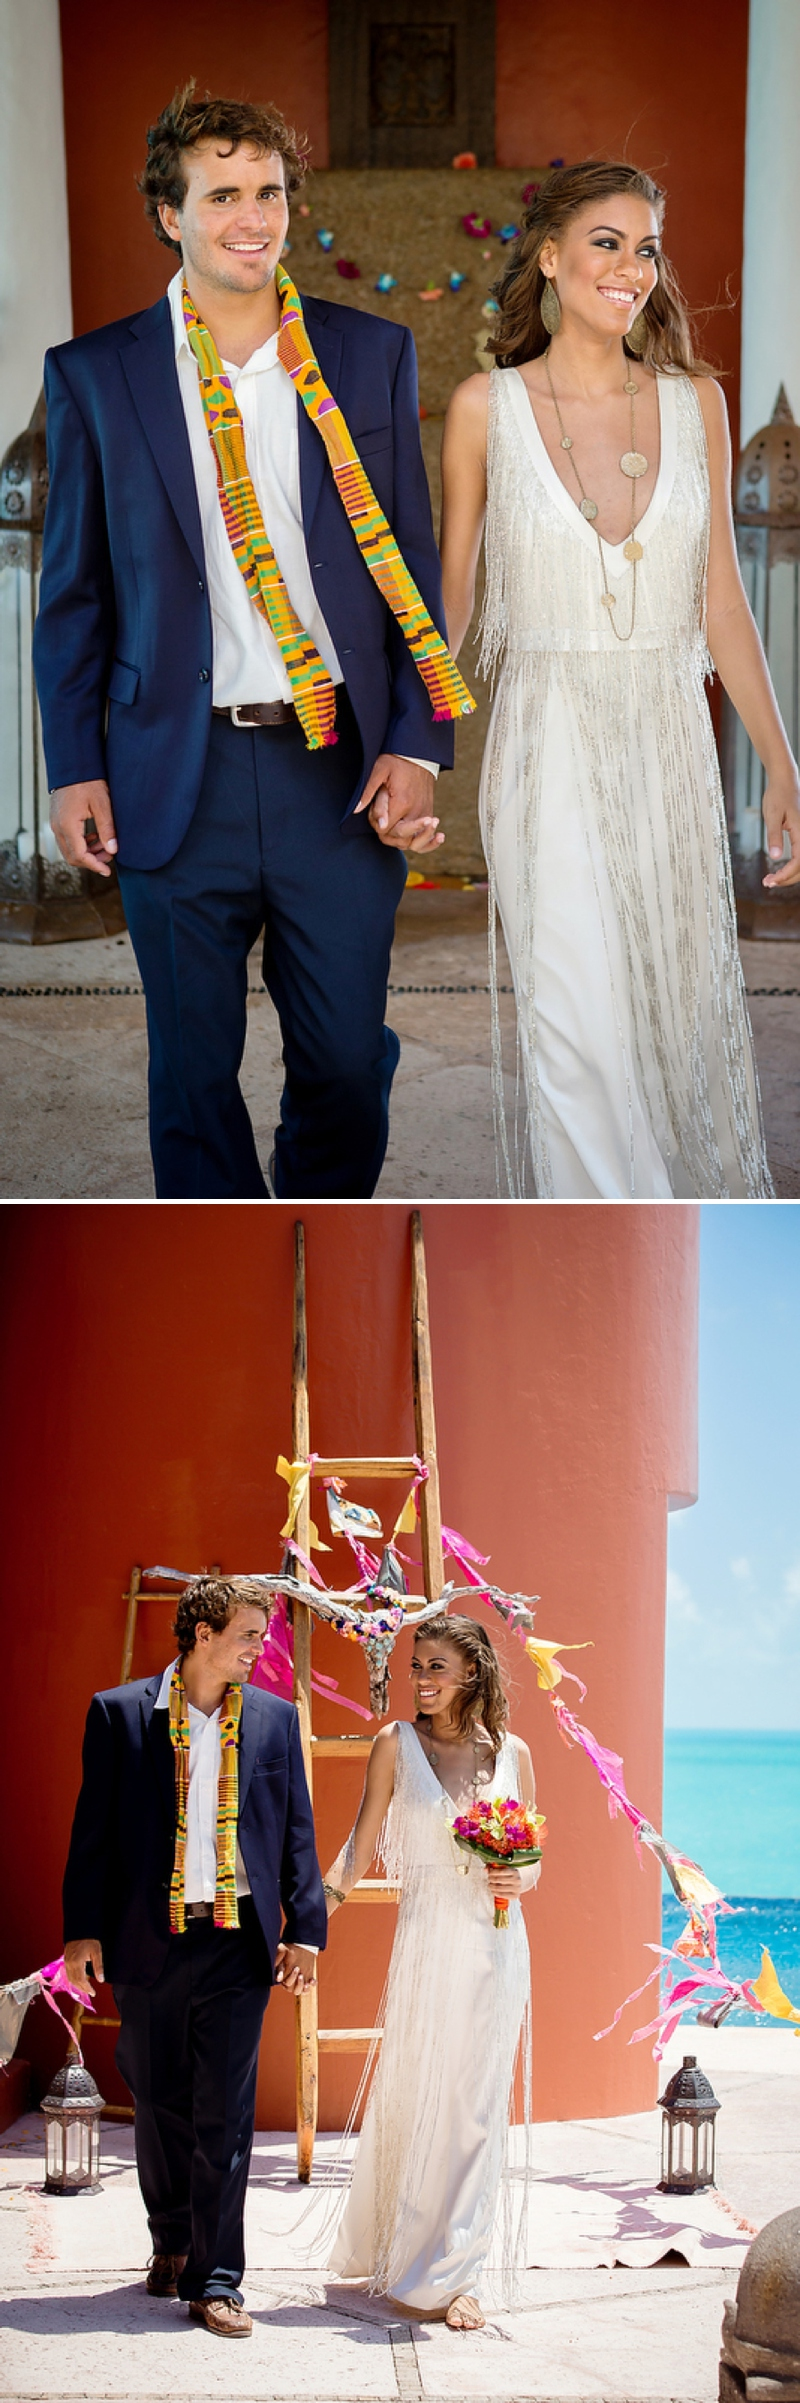 A bohemian beach destination wedding inspiration shoot in Turks & Caicosby Brilliant Studios_0079